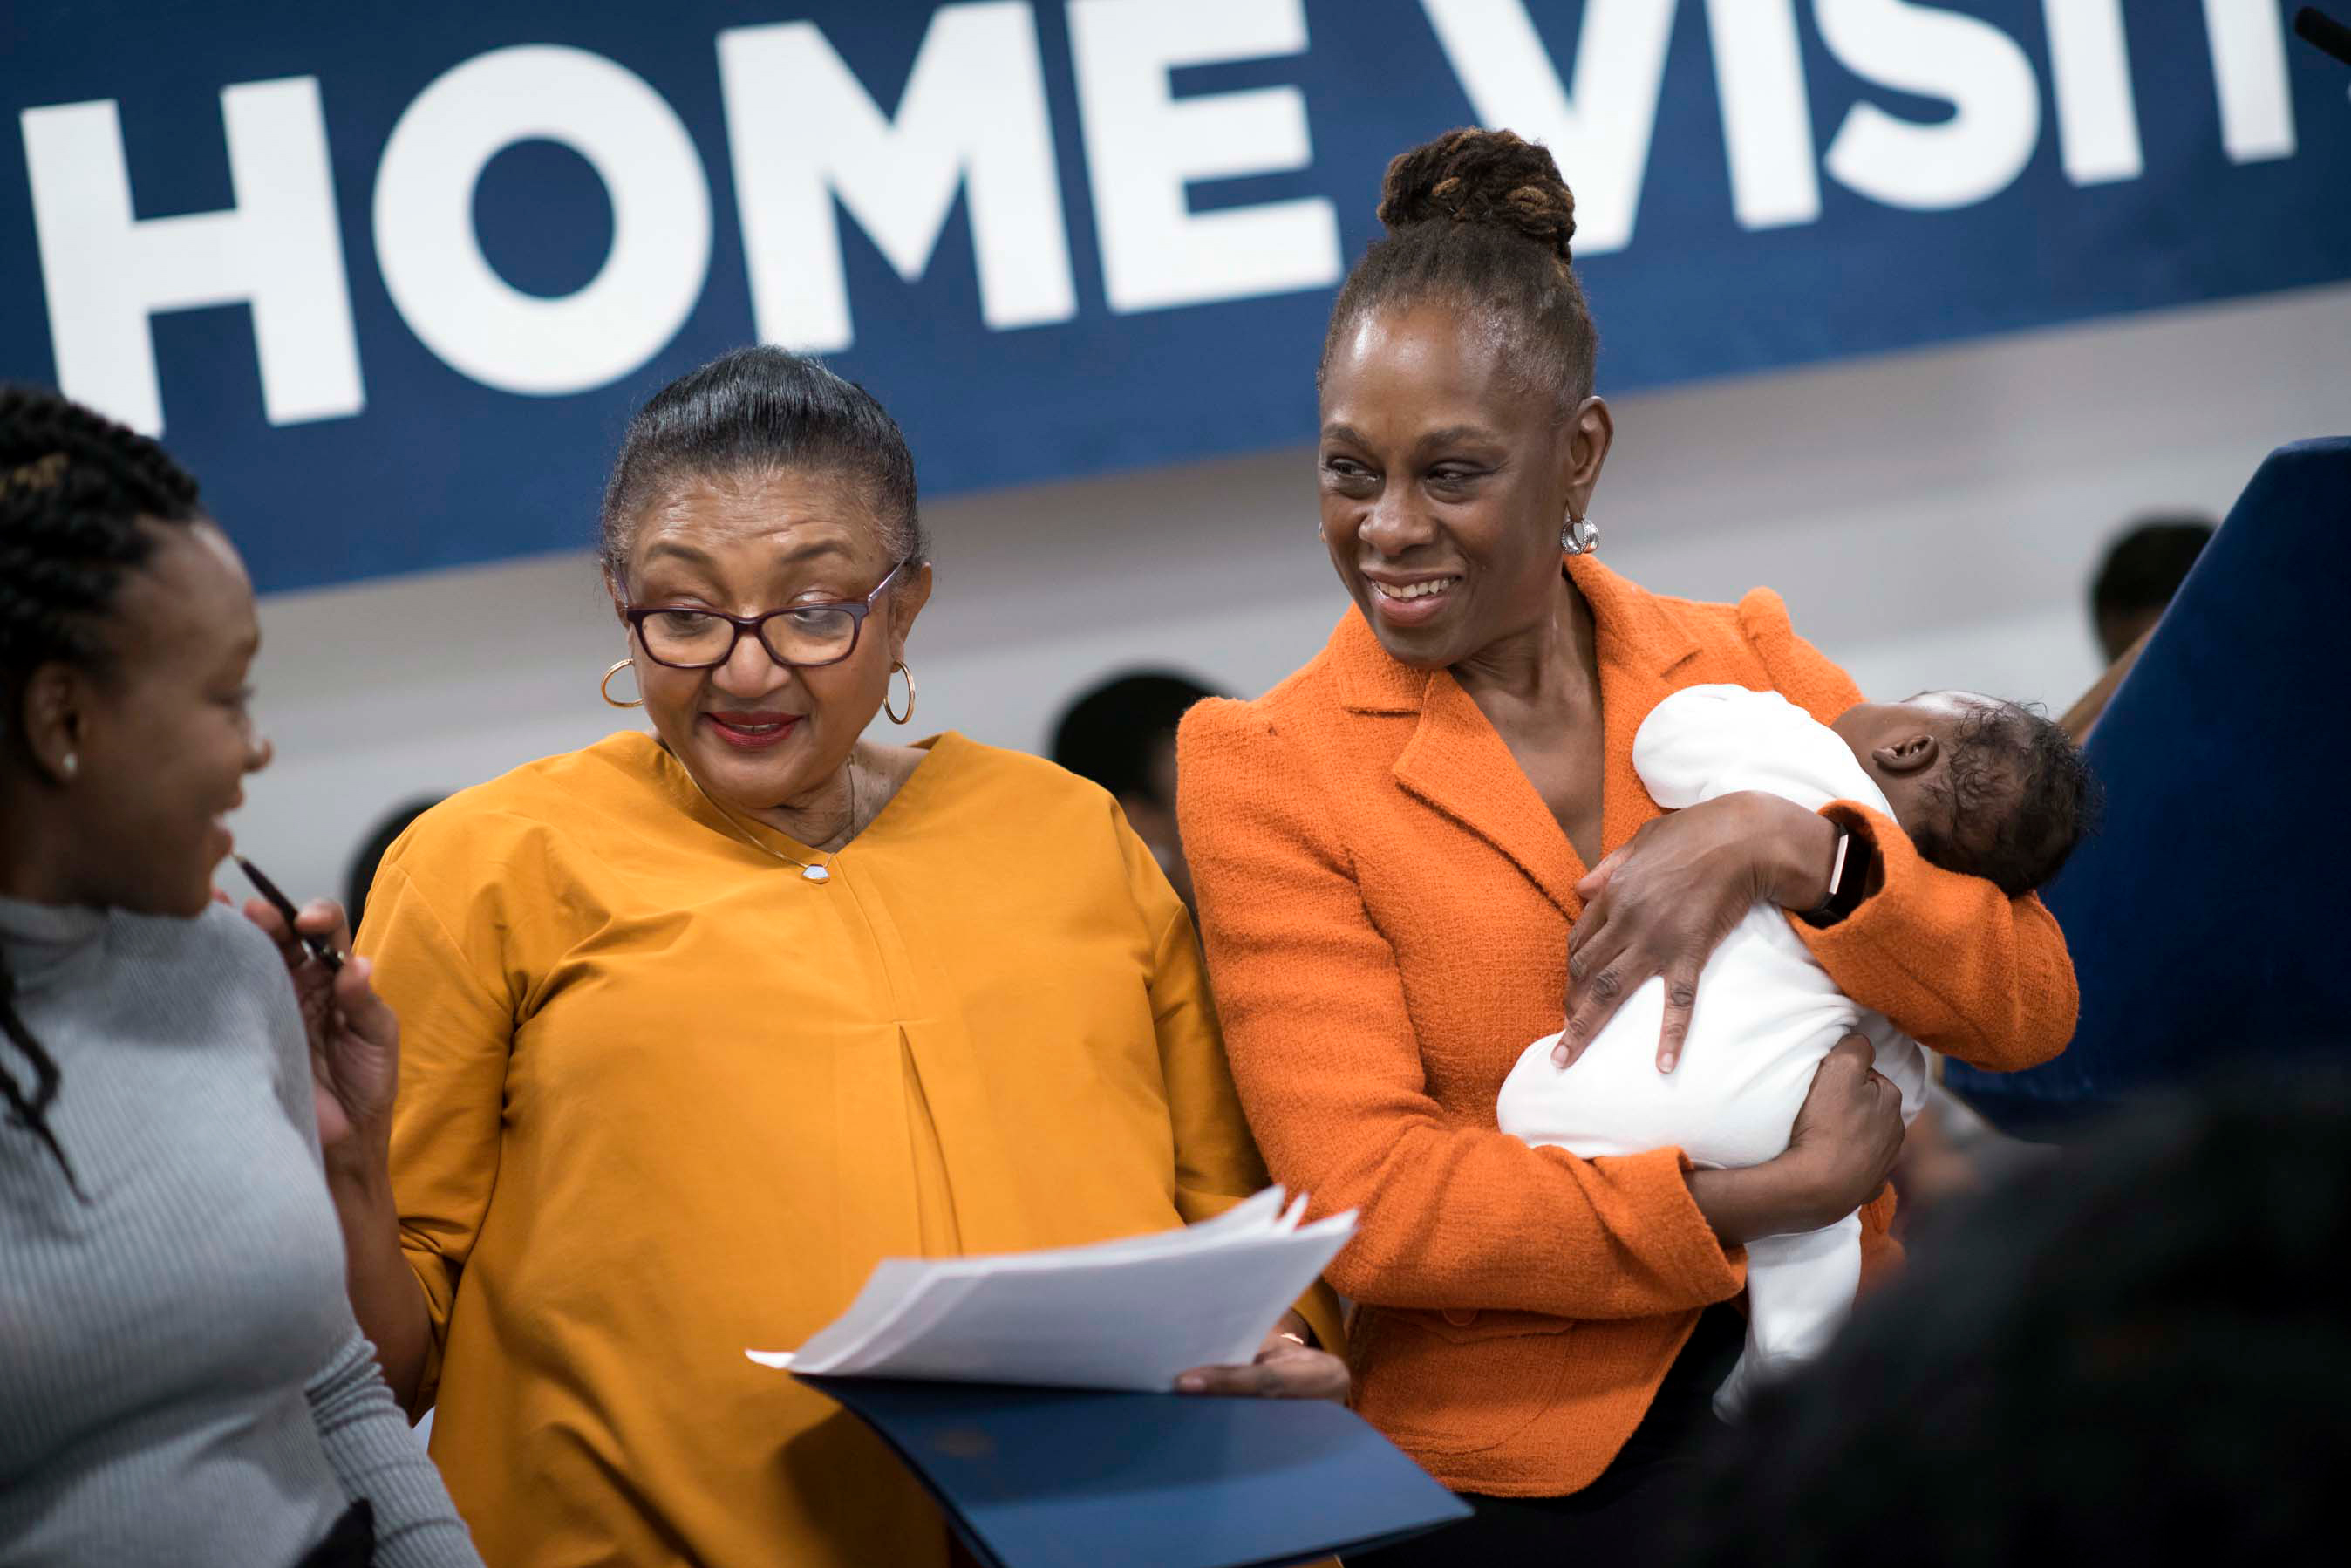 First Lady Chirlane McCray, right, announces a home visit program for new parents, Feb. 5, 2020.